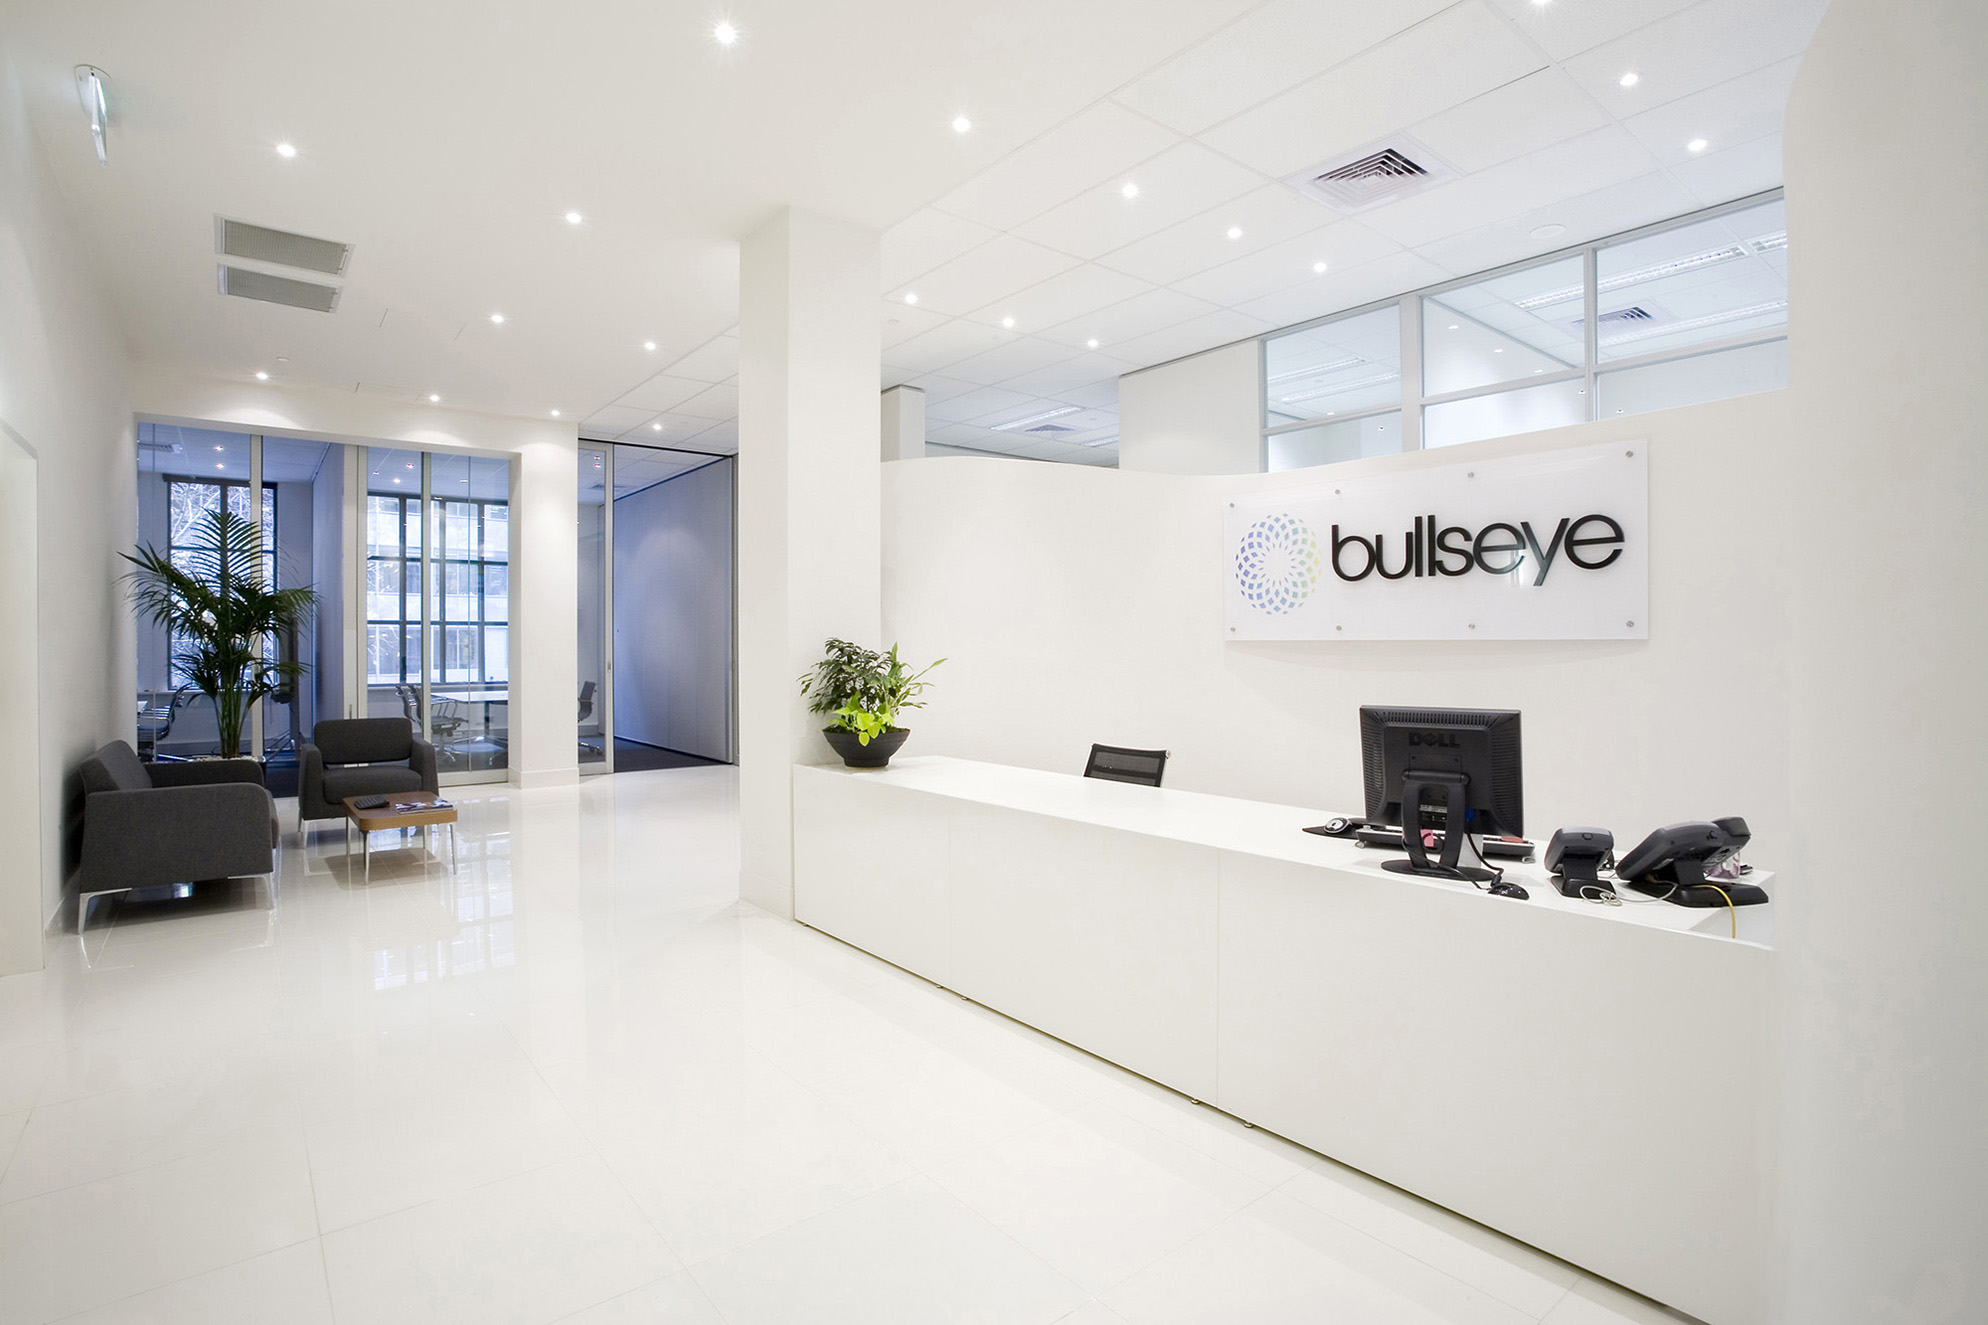 Marketing office designers for bullseye in2space for Marketing office design